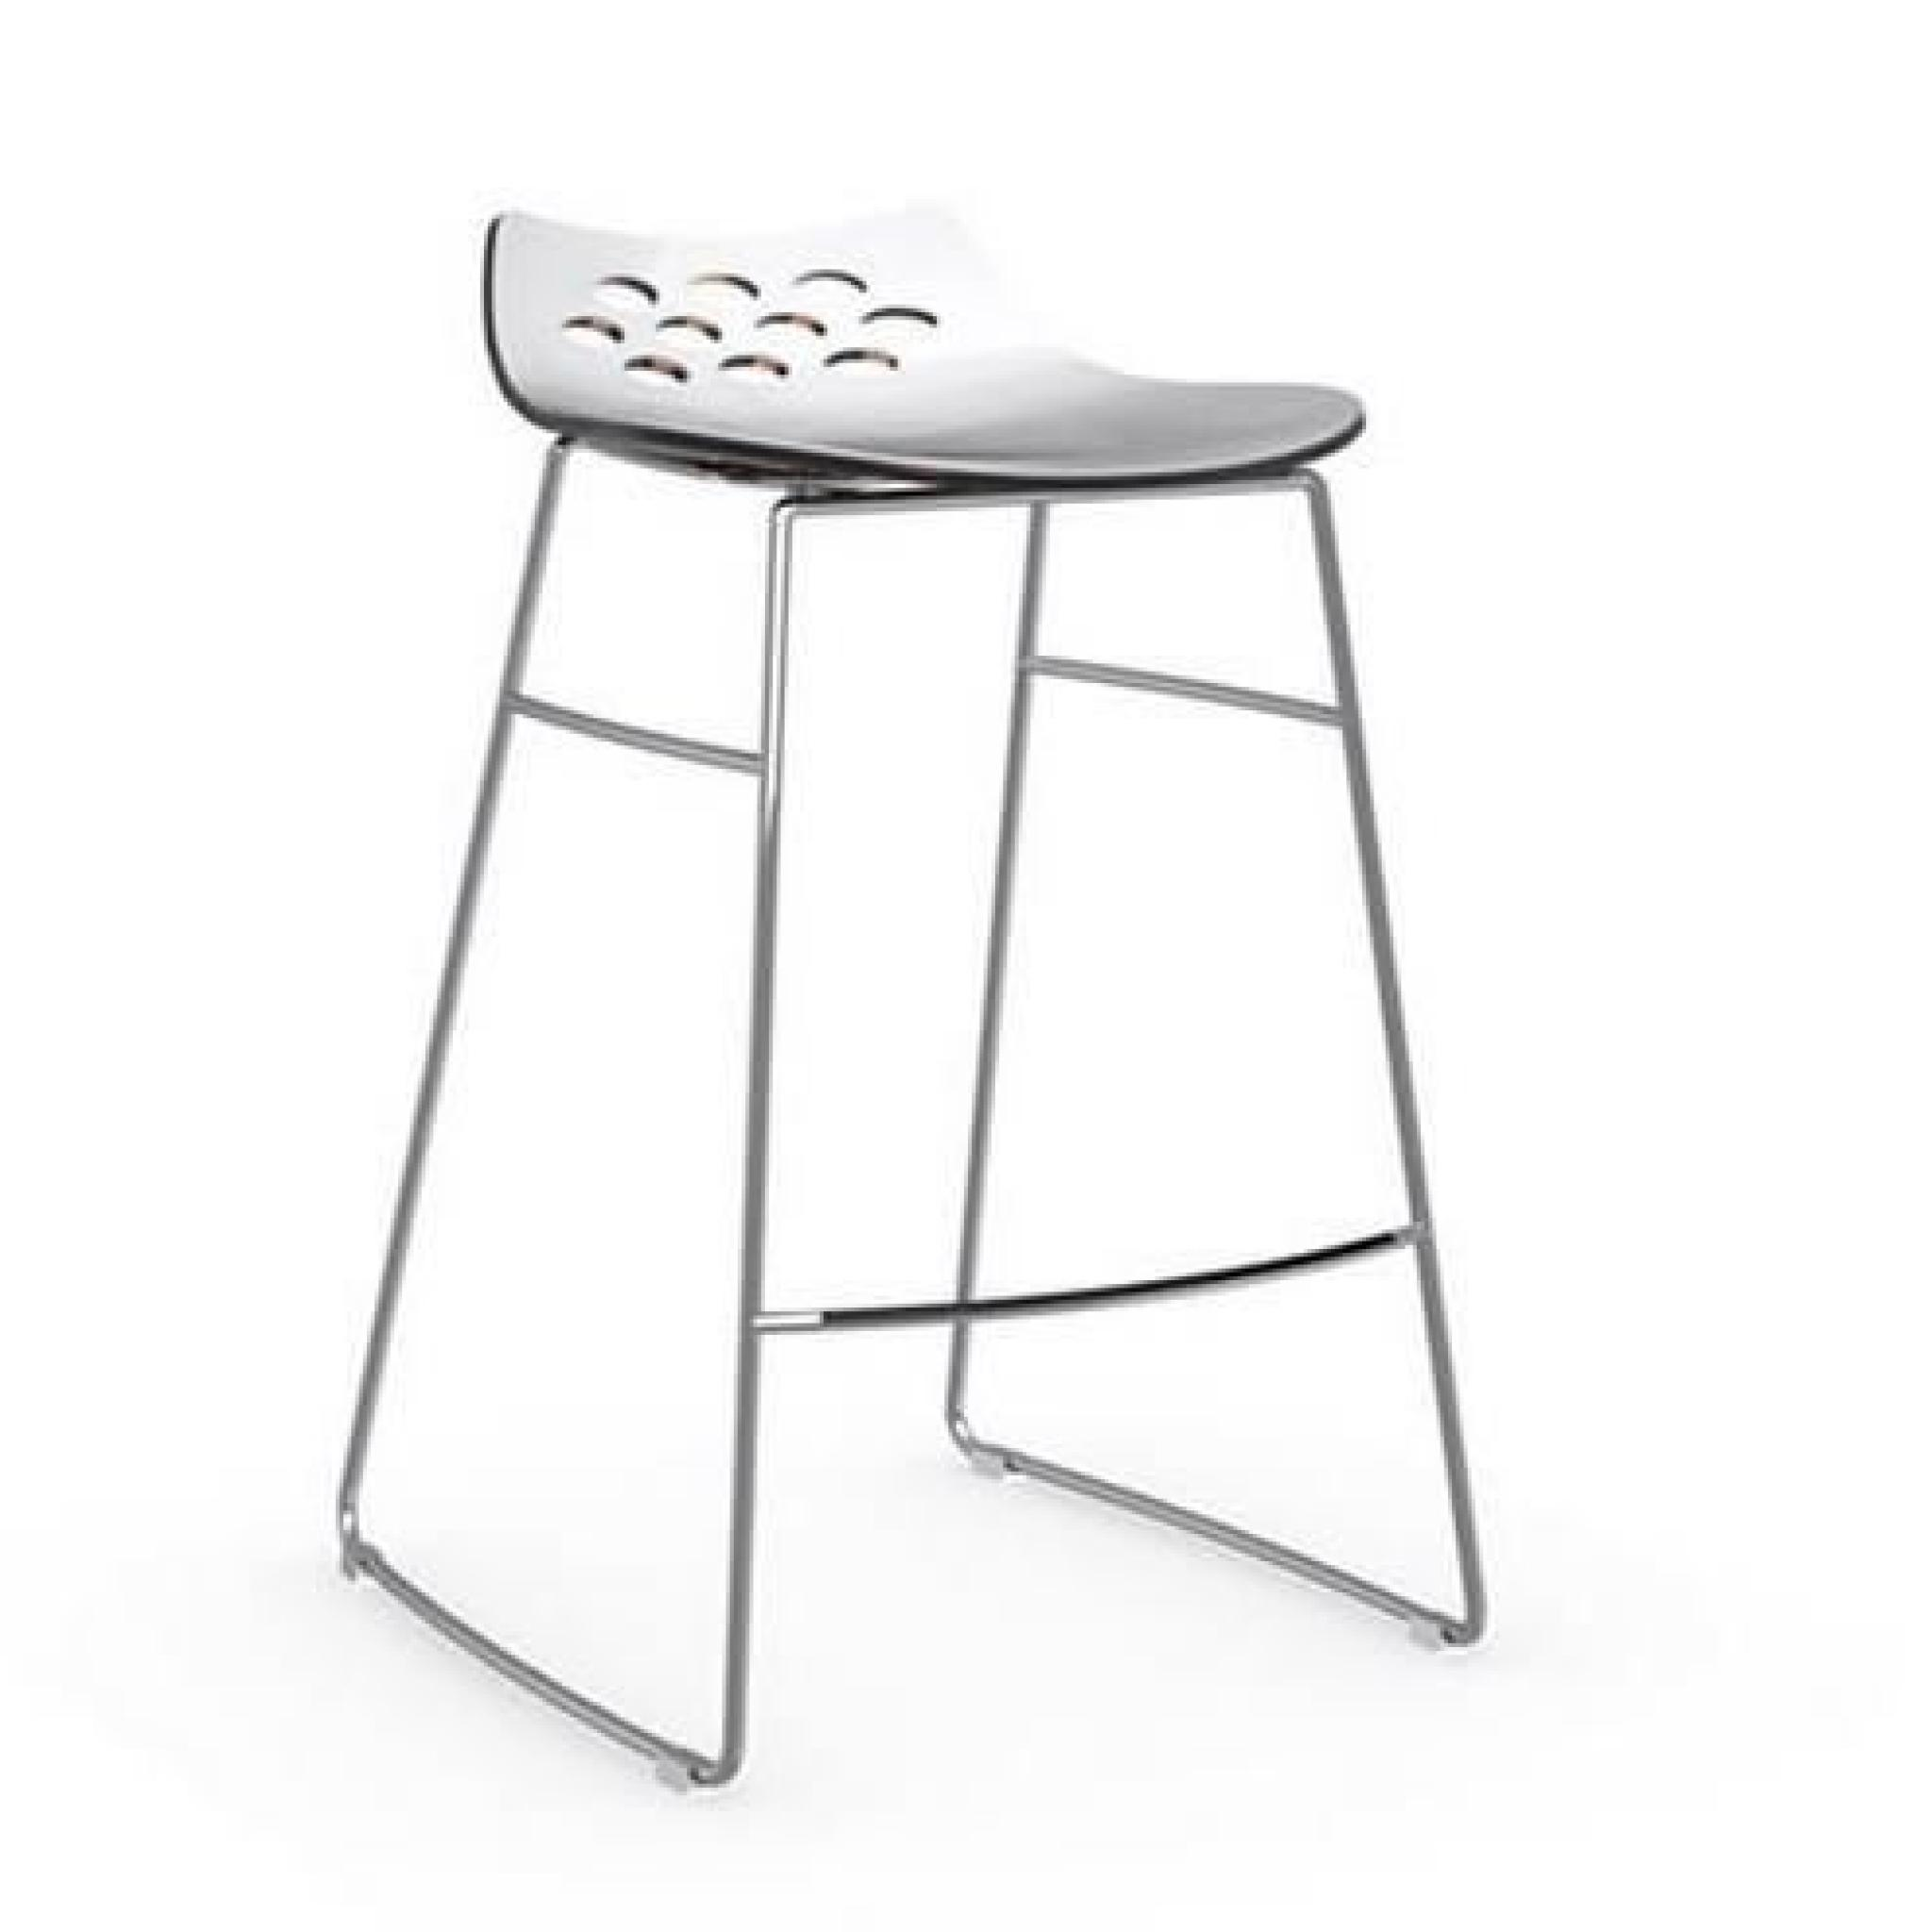 tabouret de bar design jam de calligaris orange et blanc achat vente tabouret de bar pas cher. Black Bedroom Furniture Sets. Home Design Ideas